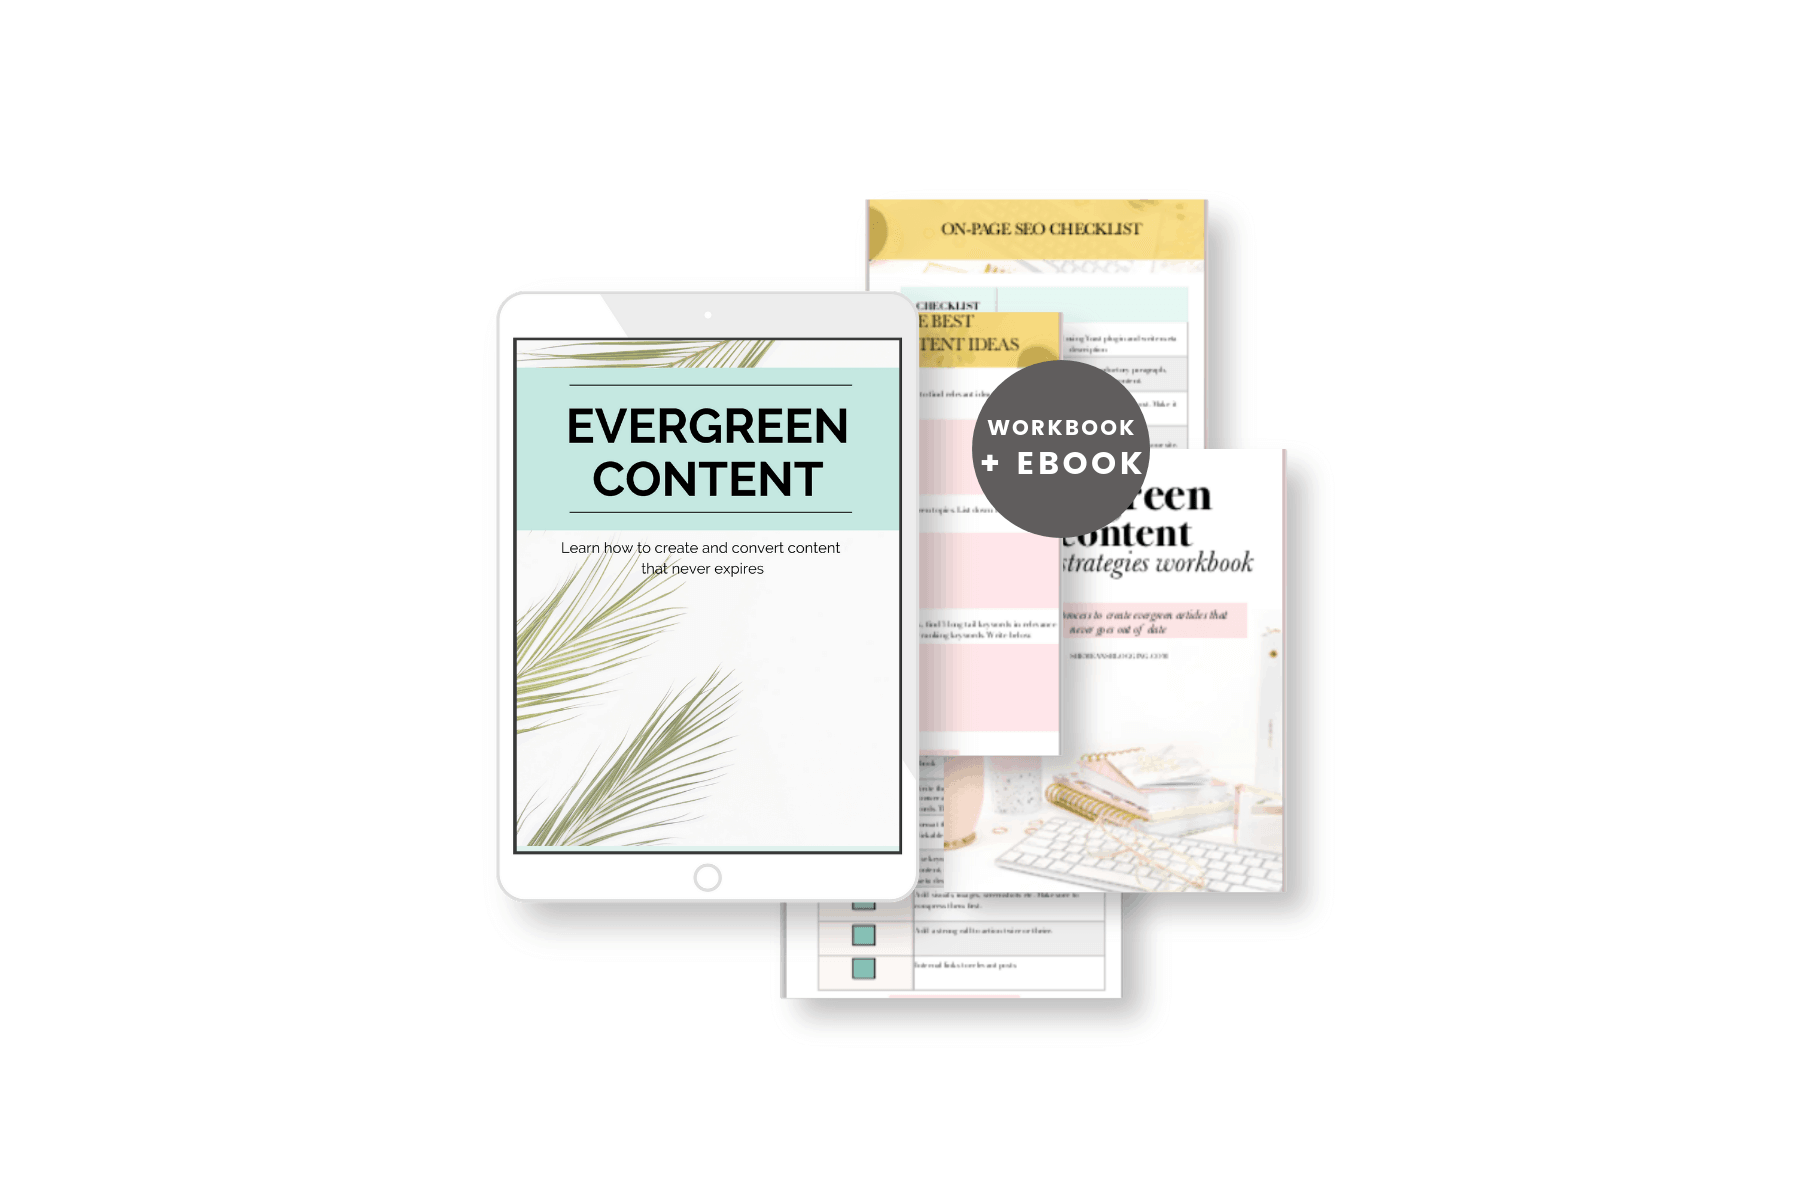 evergreen content ebook and workbook